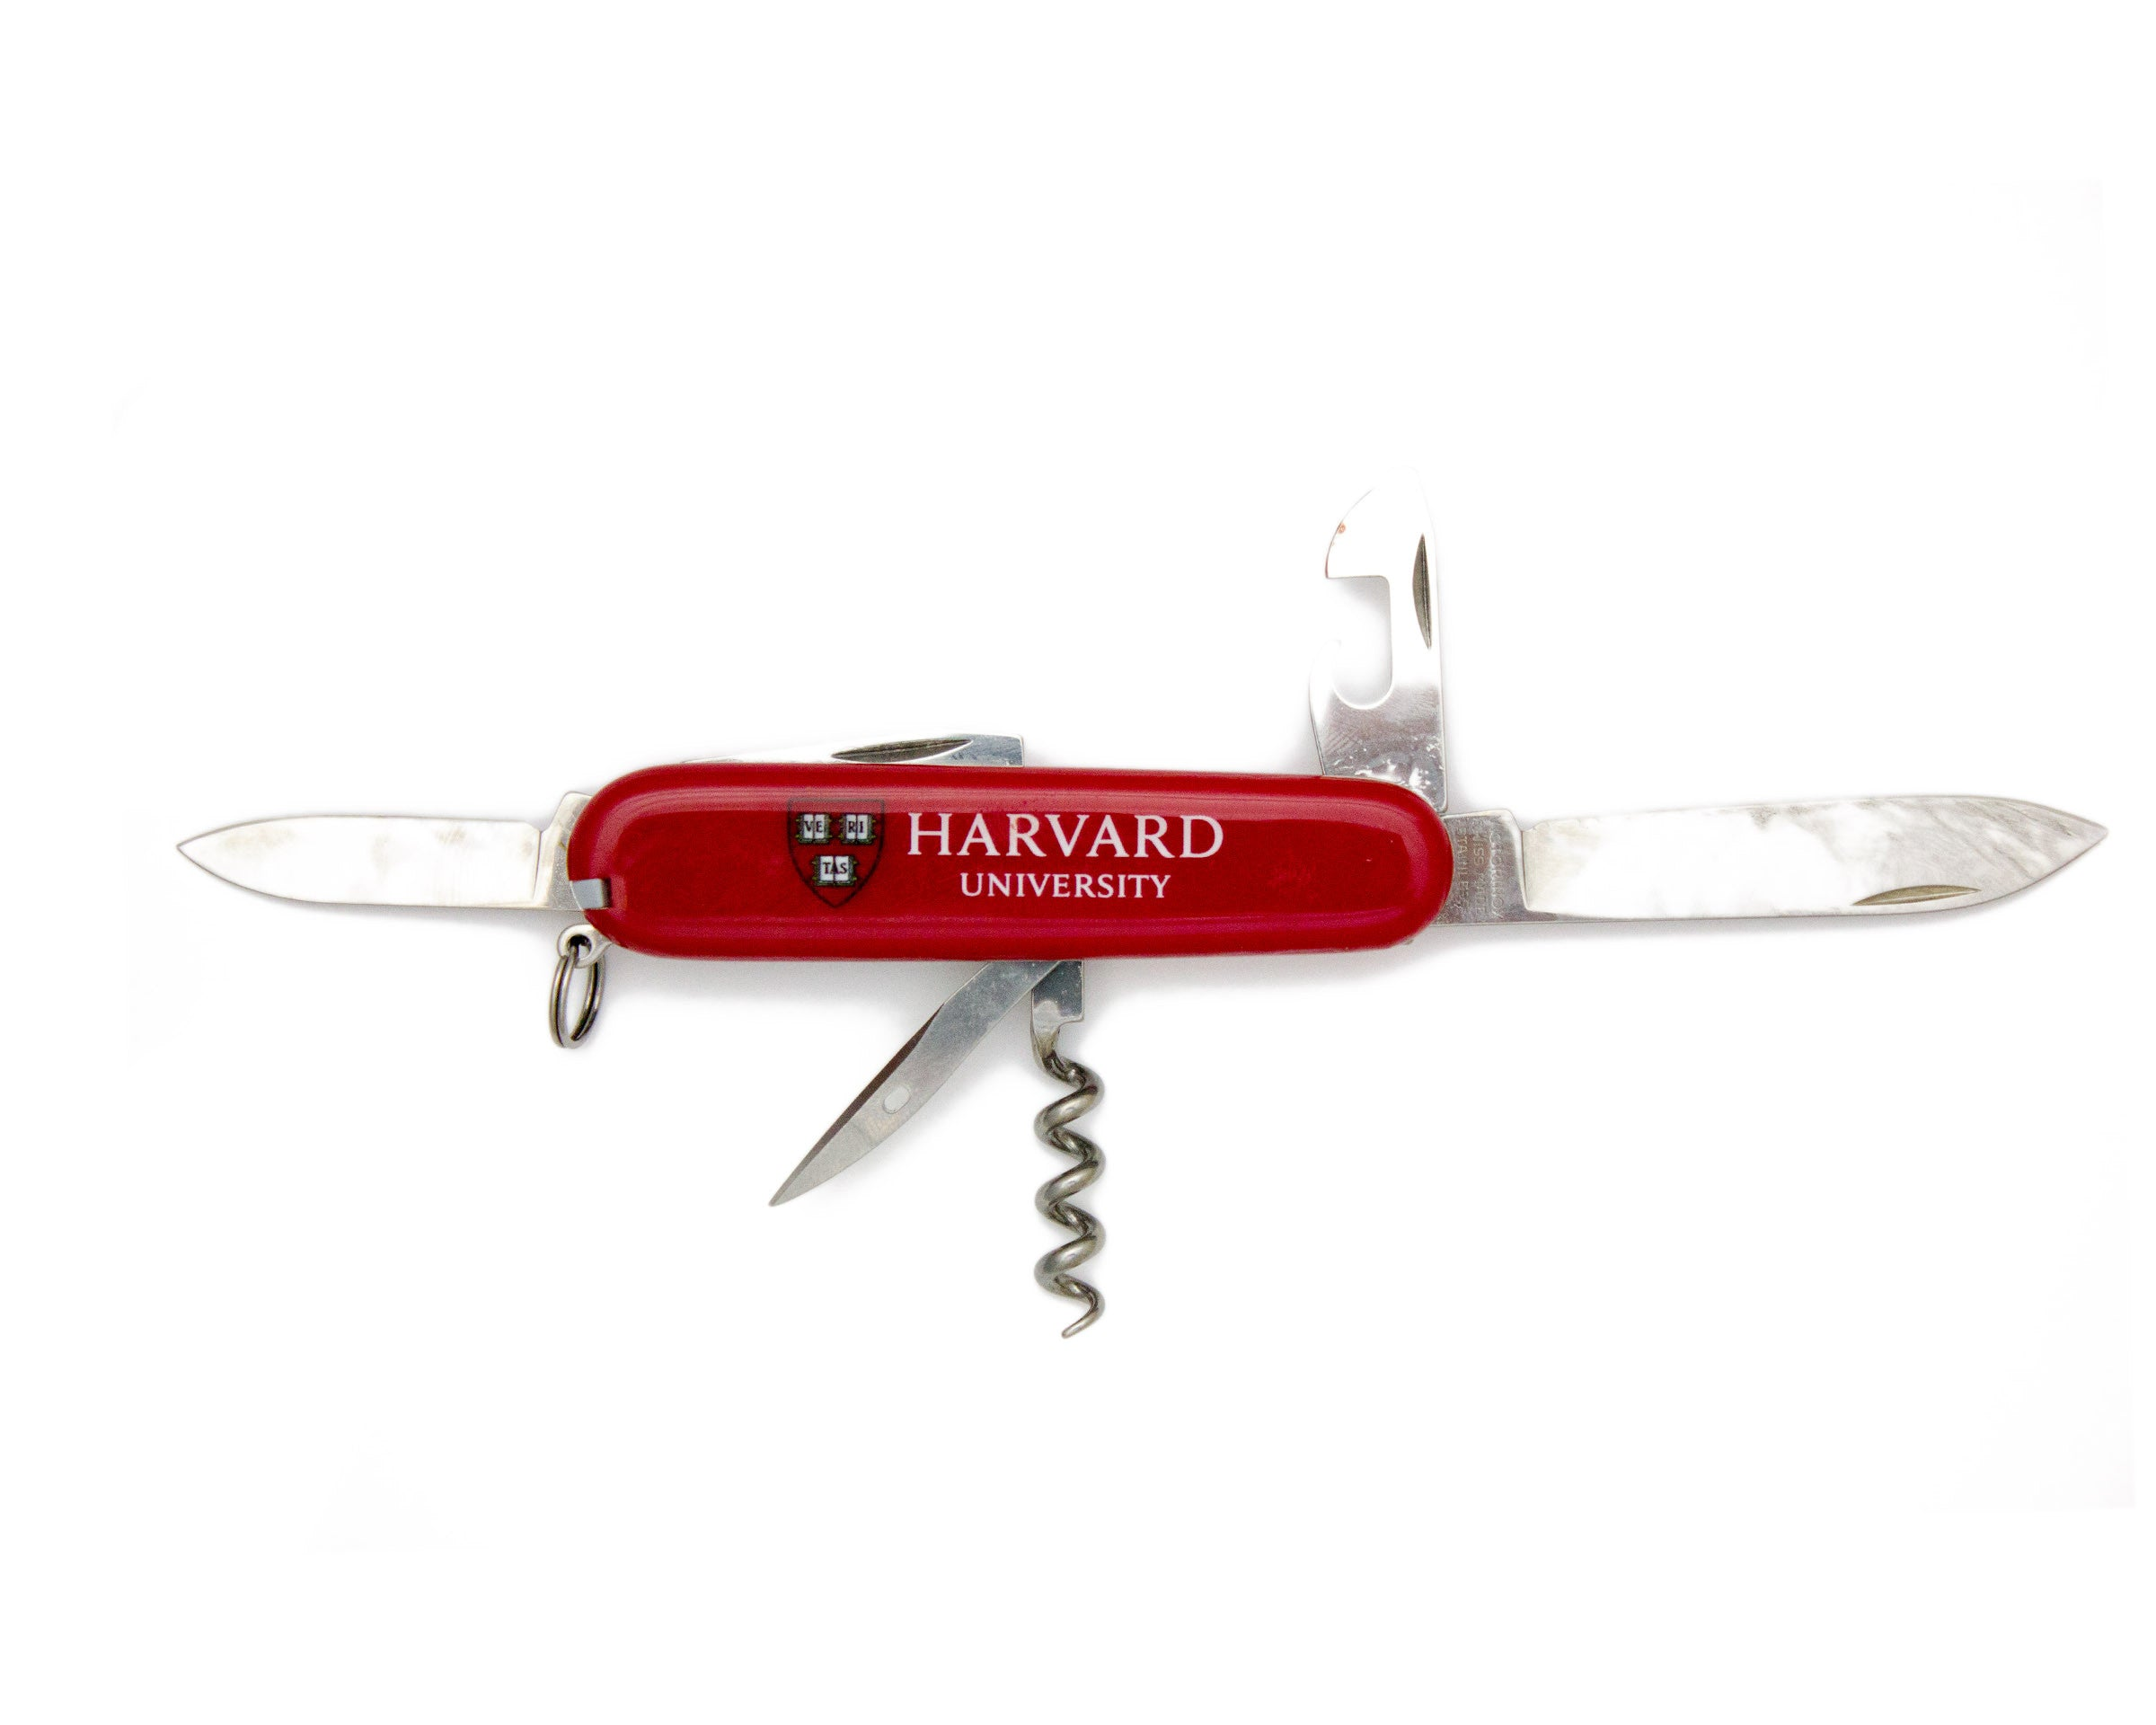 Spartan Harvard Swiss Army Knife The Harvard Shop